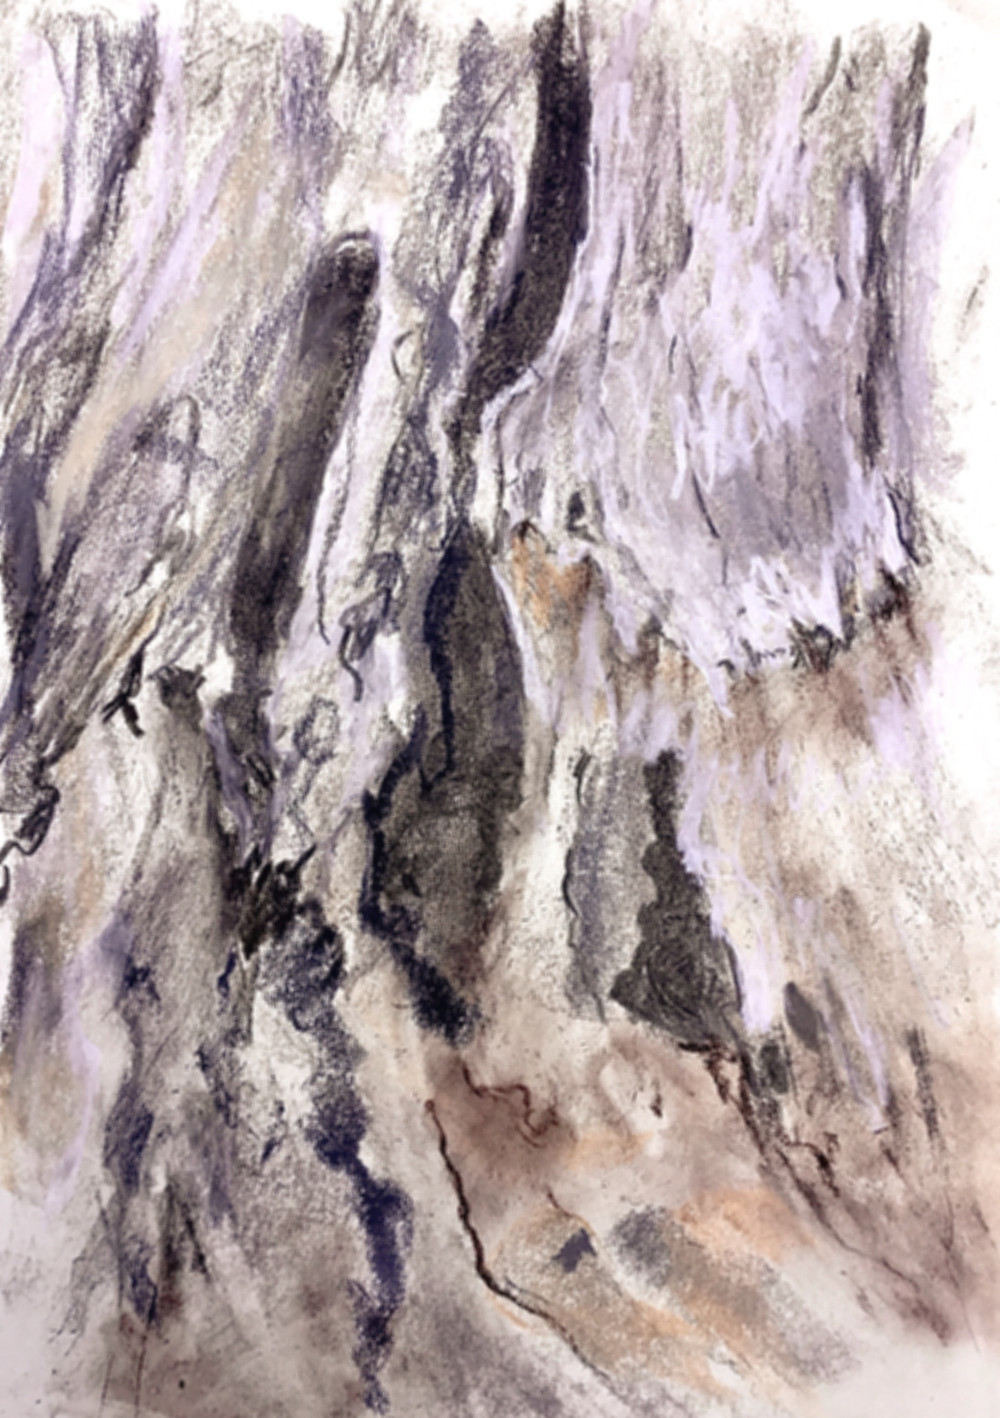 A chalk pastel and charcoal sketch of the rotten wood at the base of an ancient olive tree. Features broken lines in greys and blacks to depict rough textures and damage, yellow ochres and greys to pick out the varying colours of the old wood.